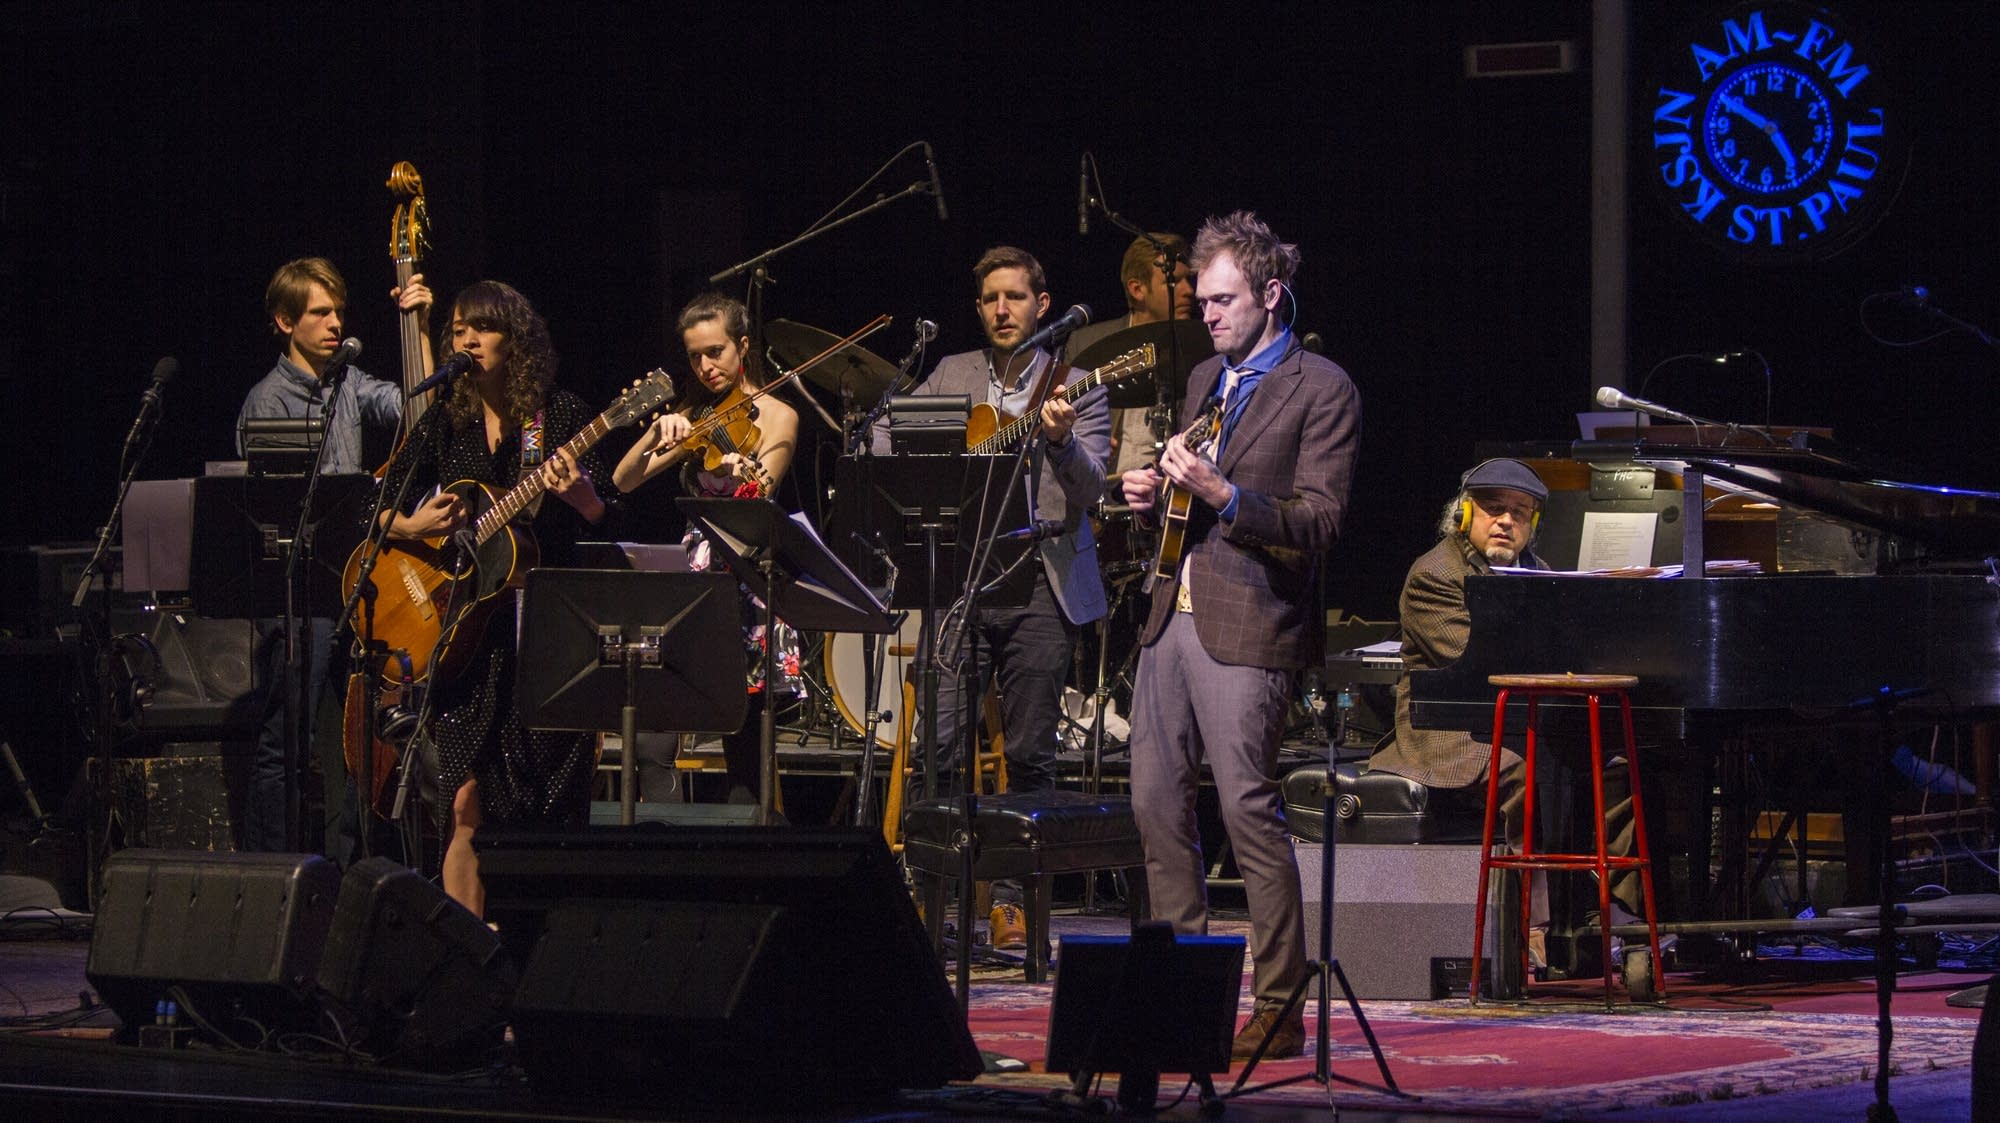 Chris Thile with the band